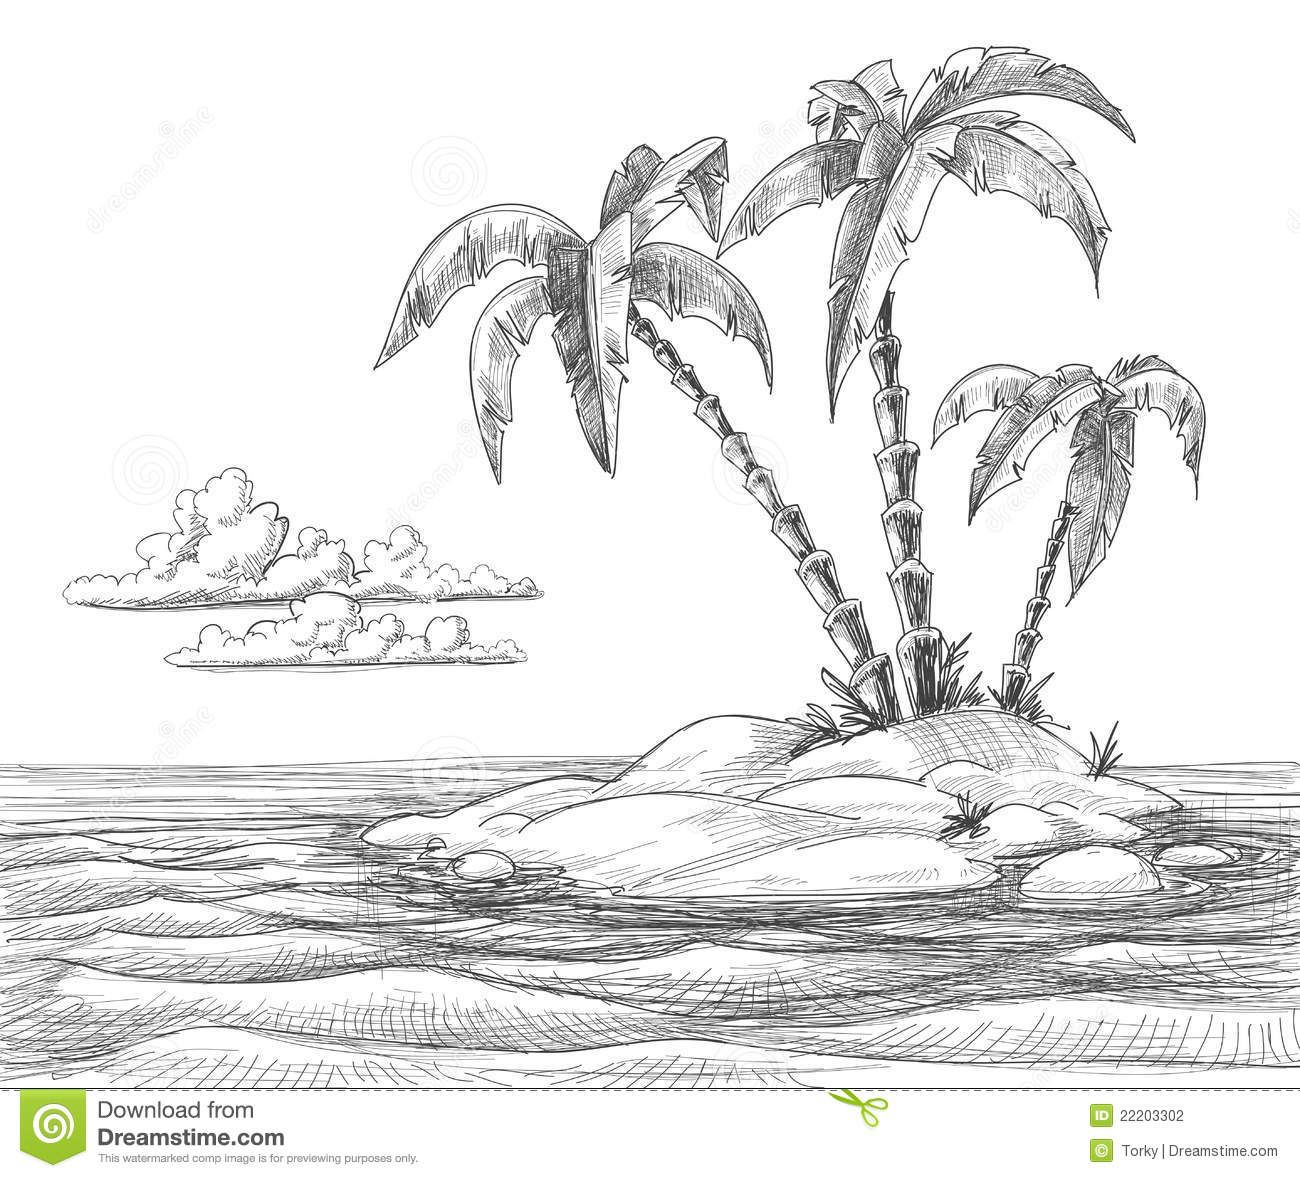 Ocean Landscape Pencil Drawings - Bing images | Teardrop ...